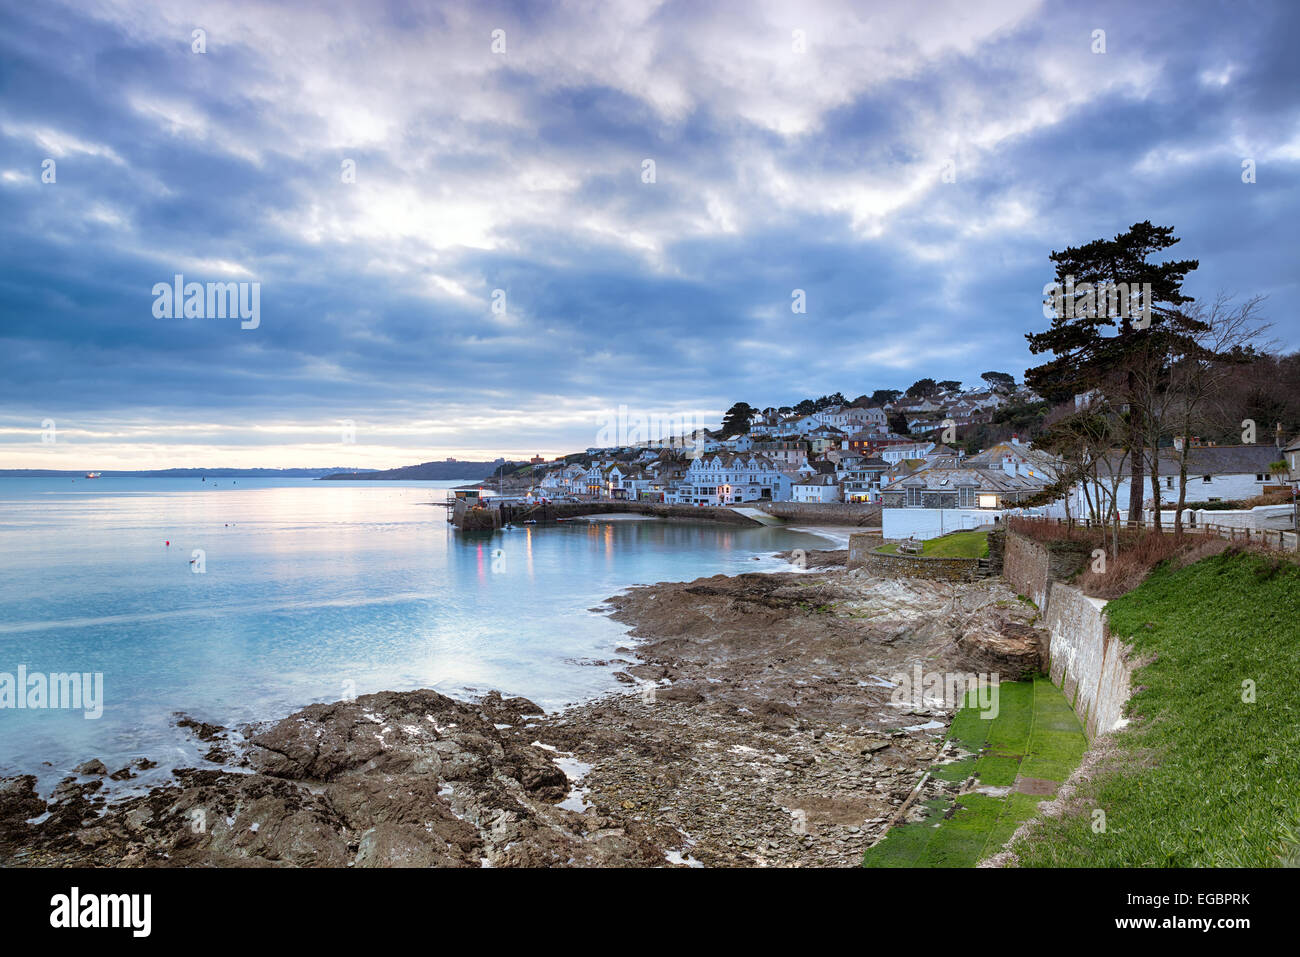 Tramonto a St Mawes Foto Stock